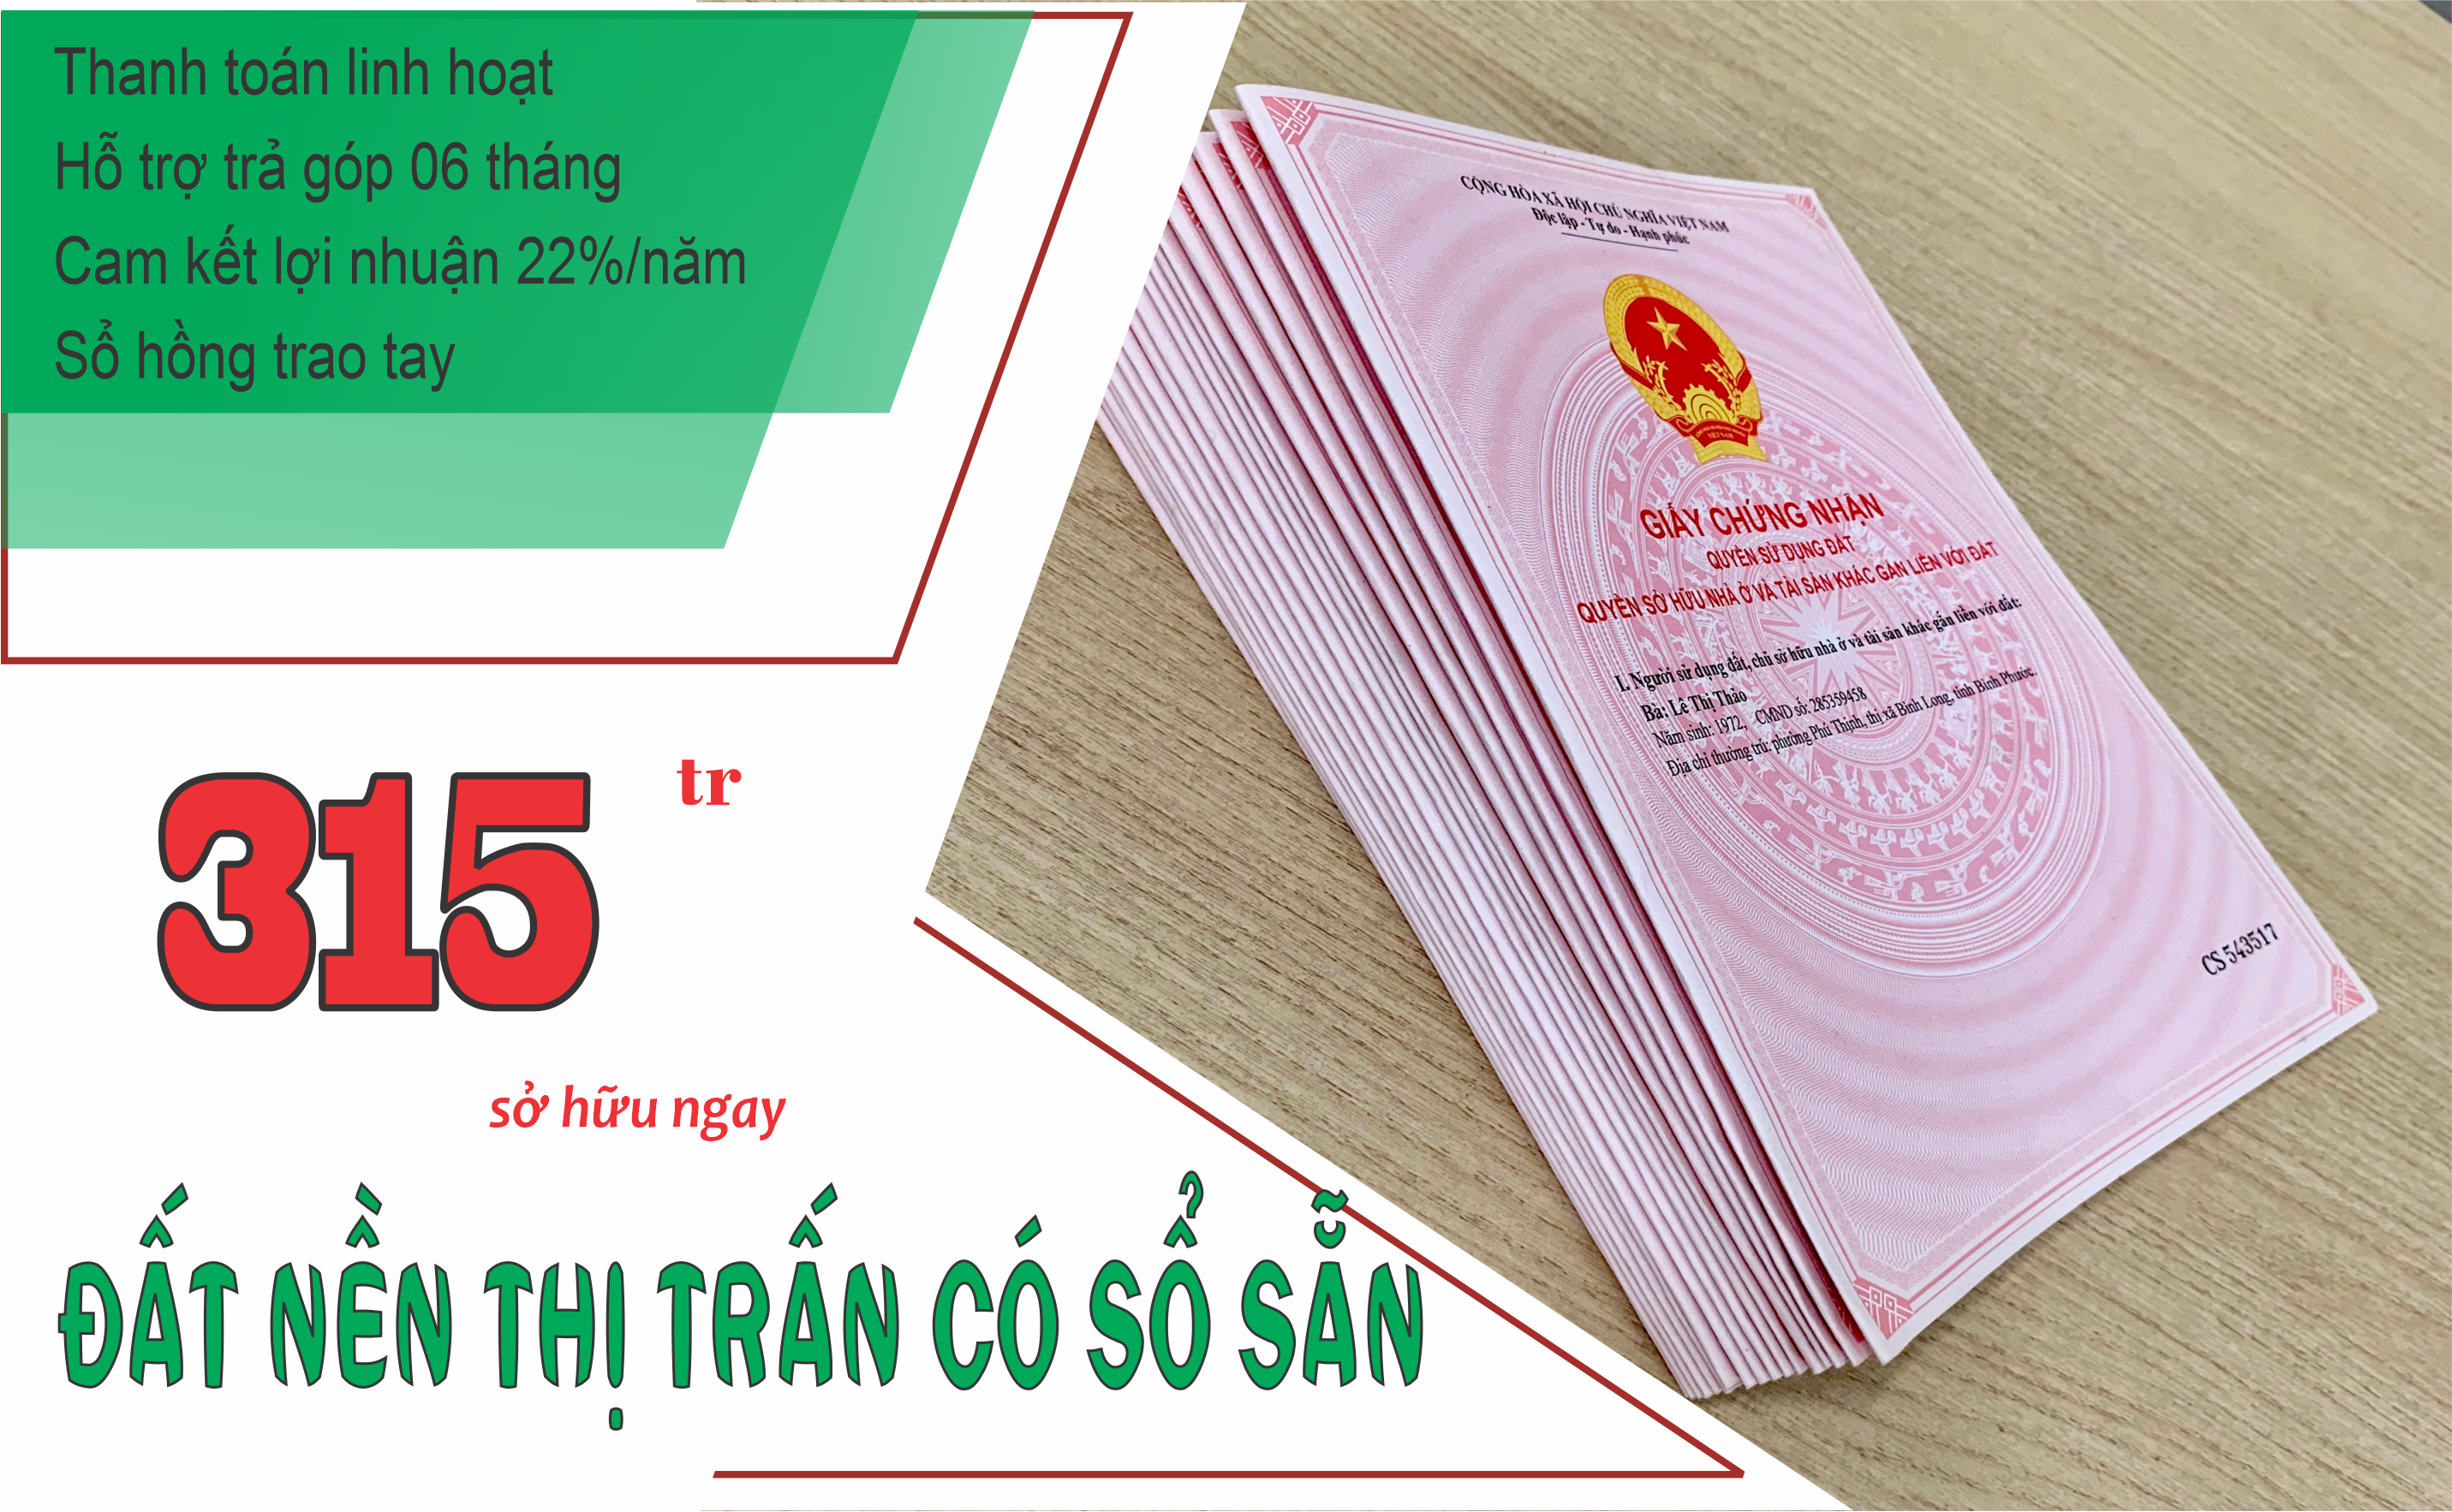 MINH VIET PHAT GROUP